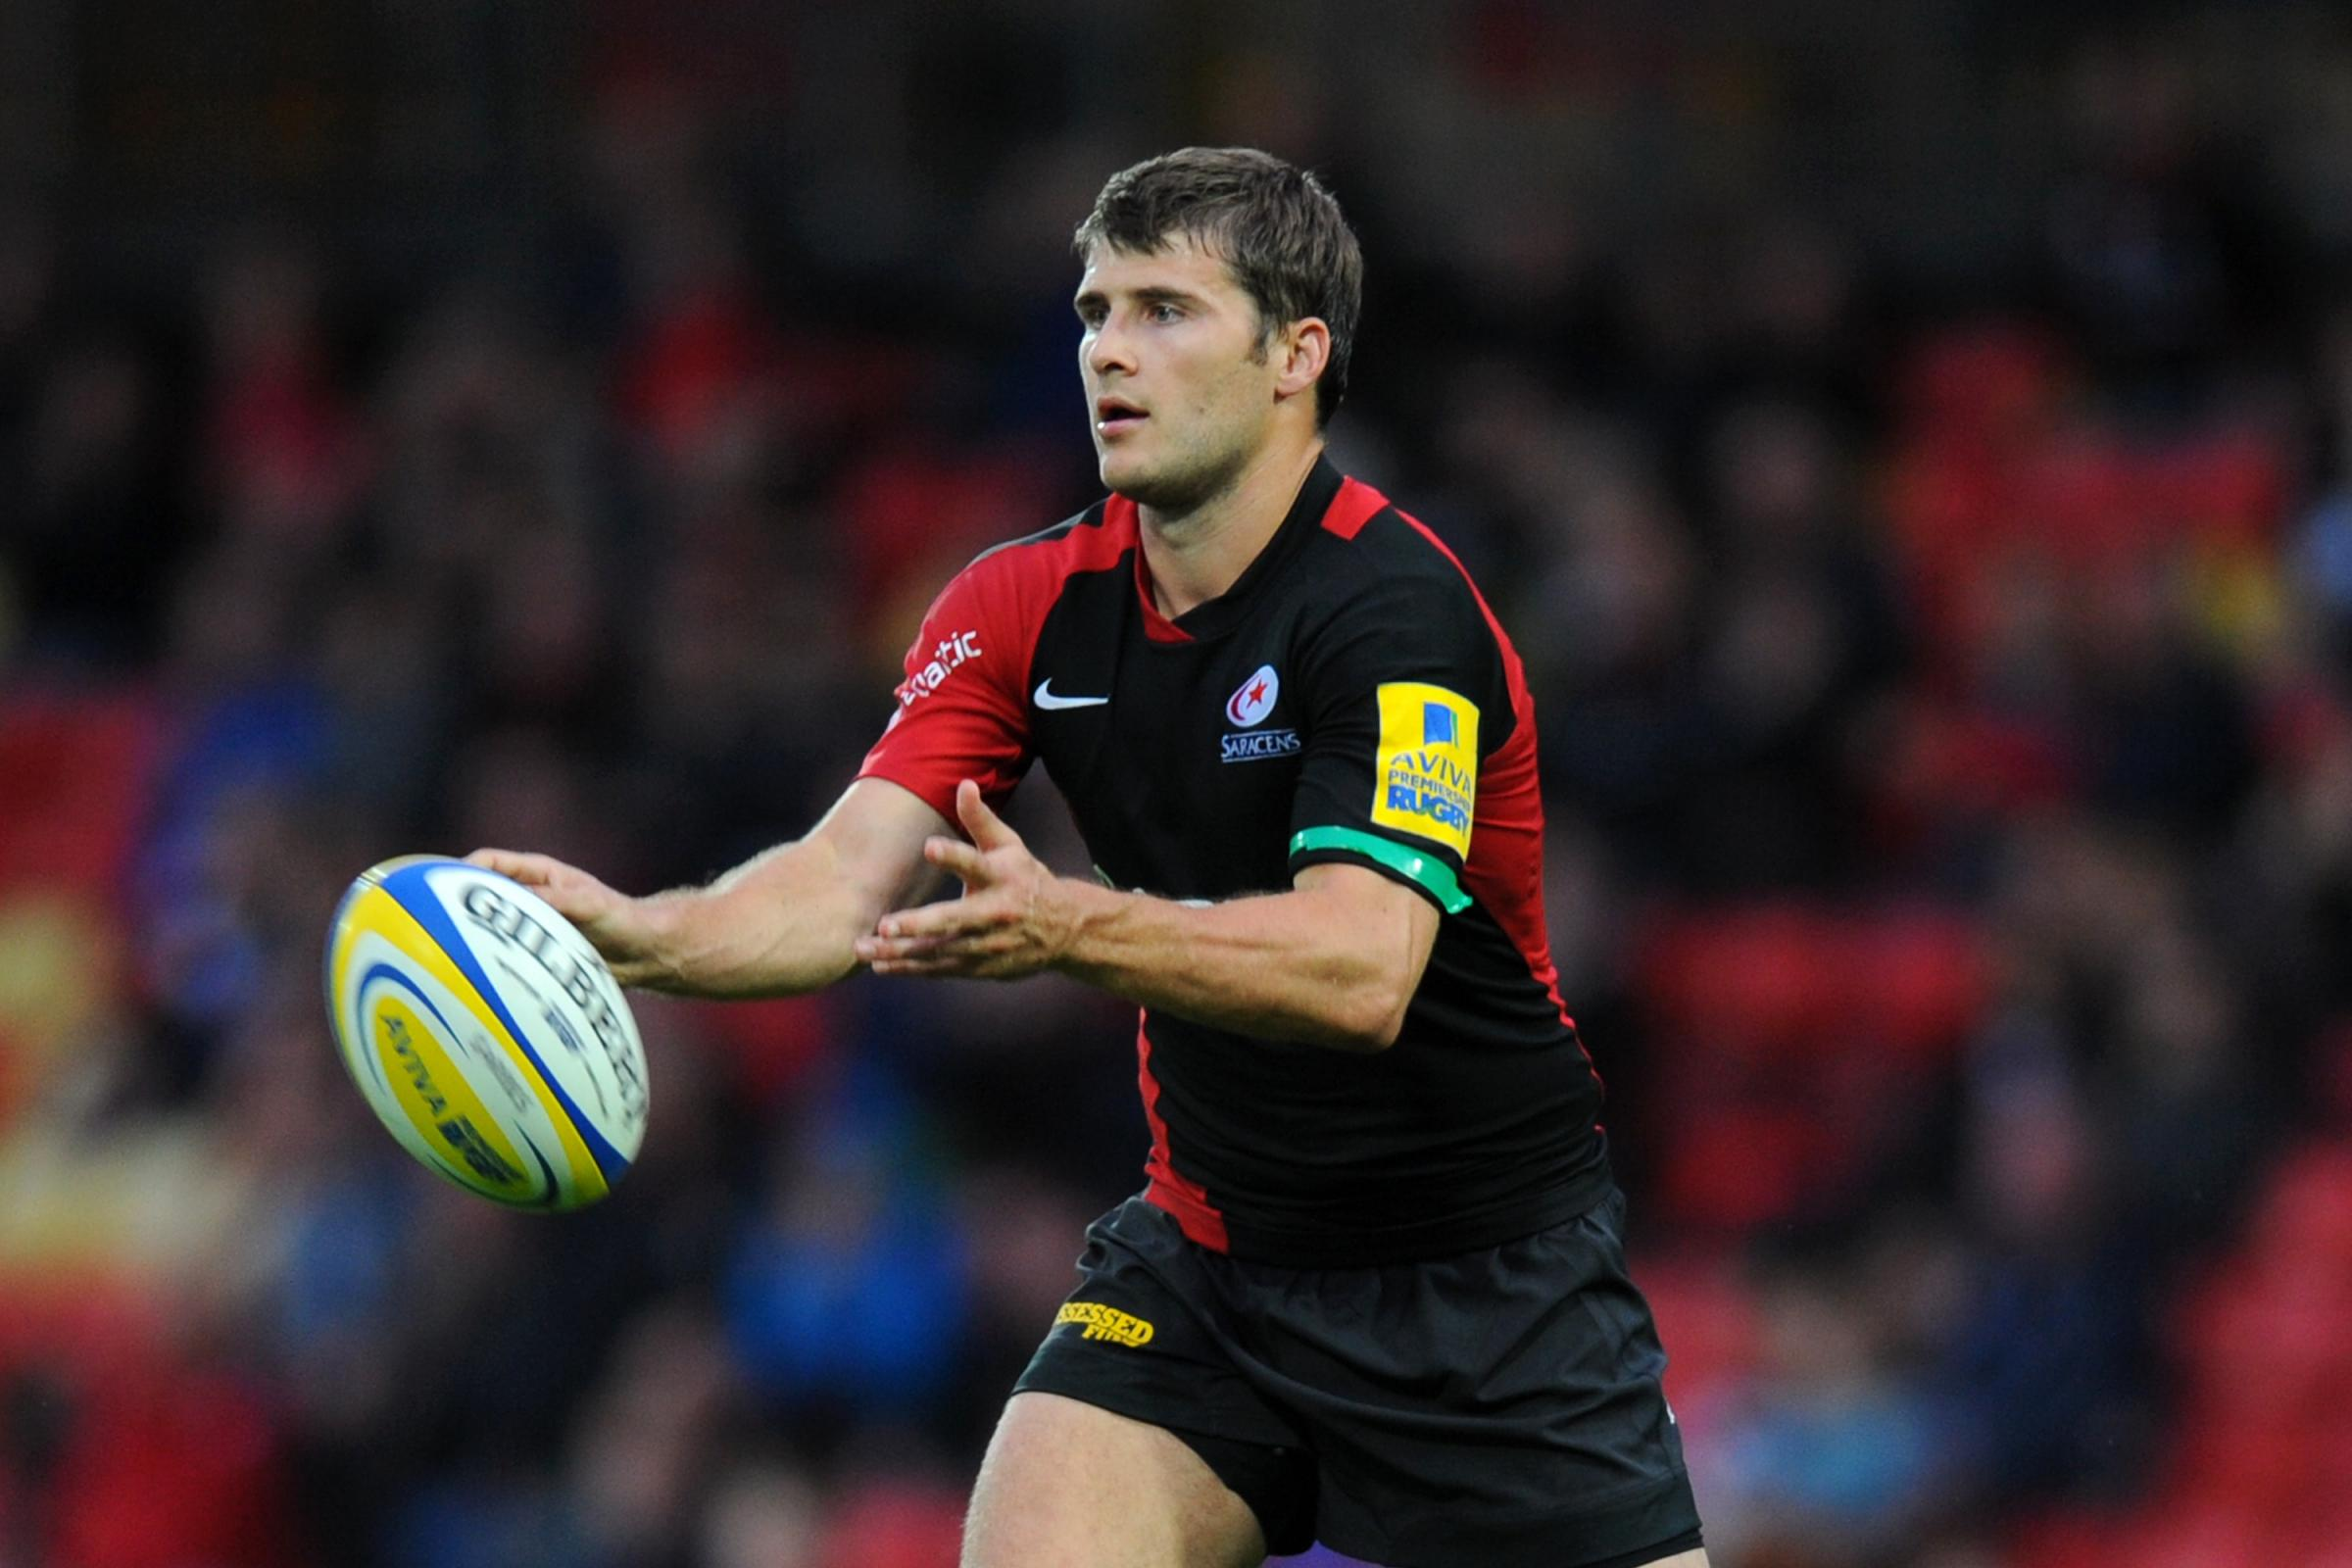 England scrum-half Richard Wigglesworth has signed a new one-year contract extension with Saracens.